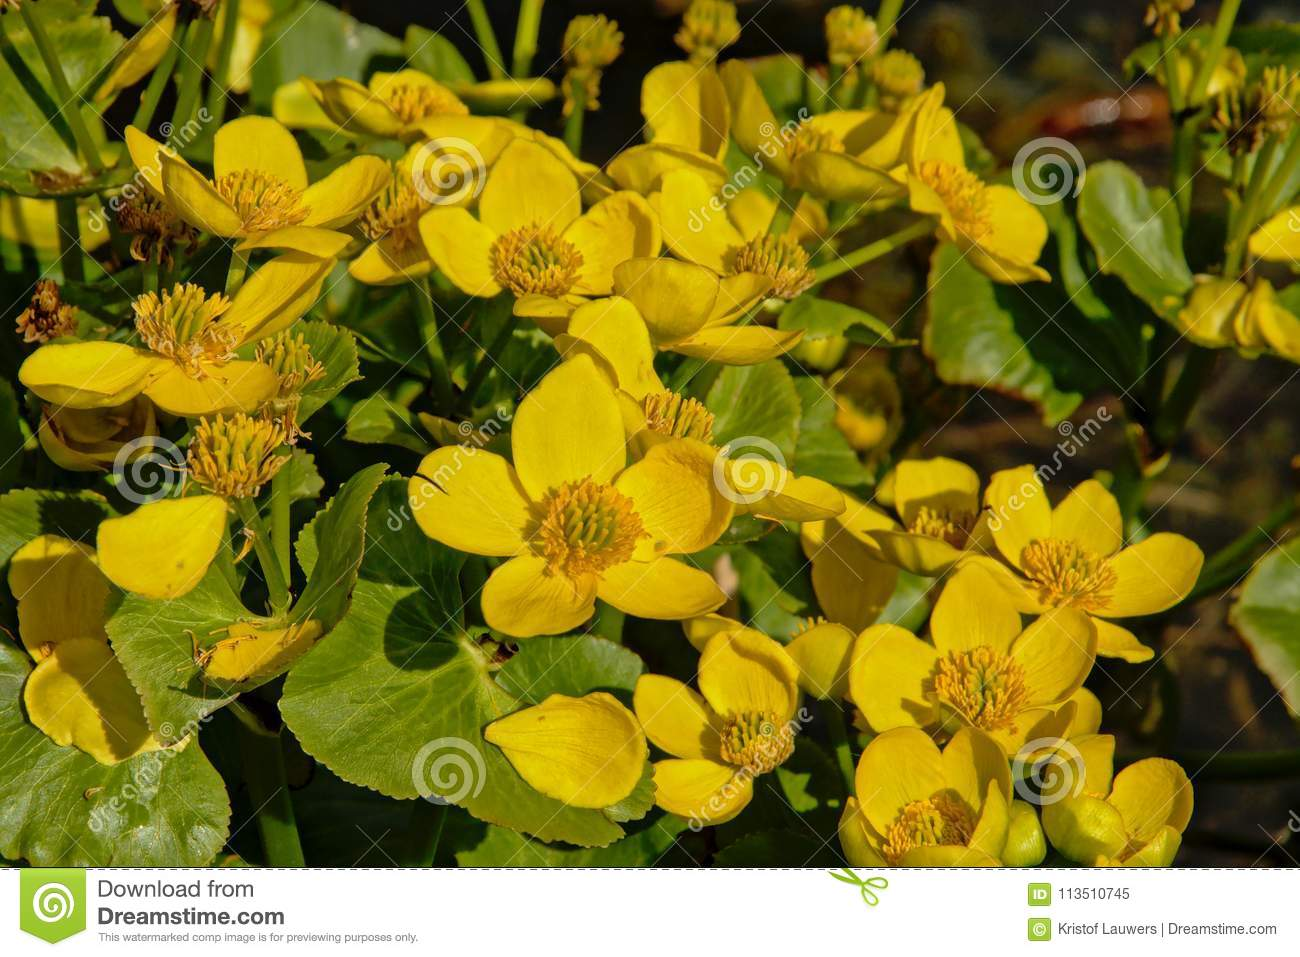 Bright yellow marsh-marigold or kingcup flowers, close up